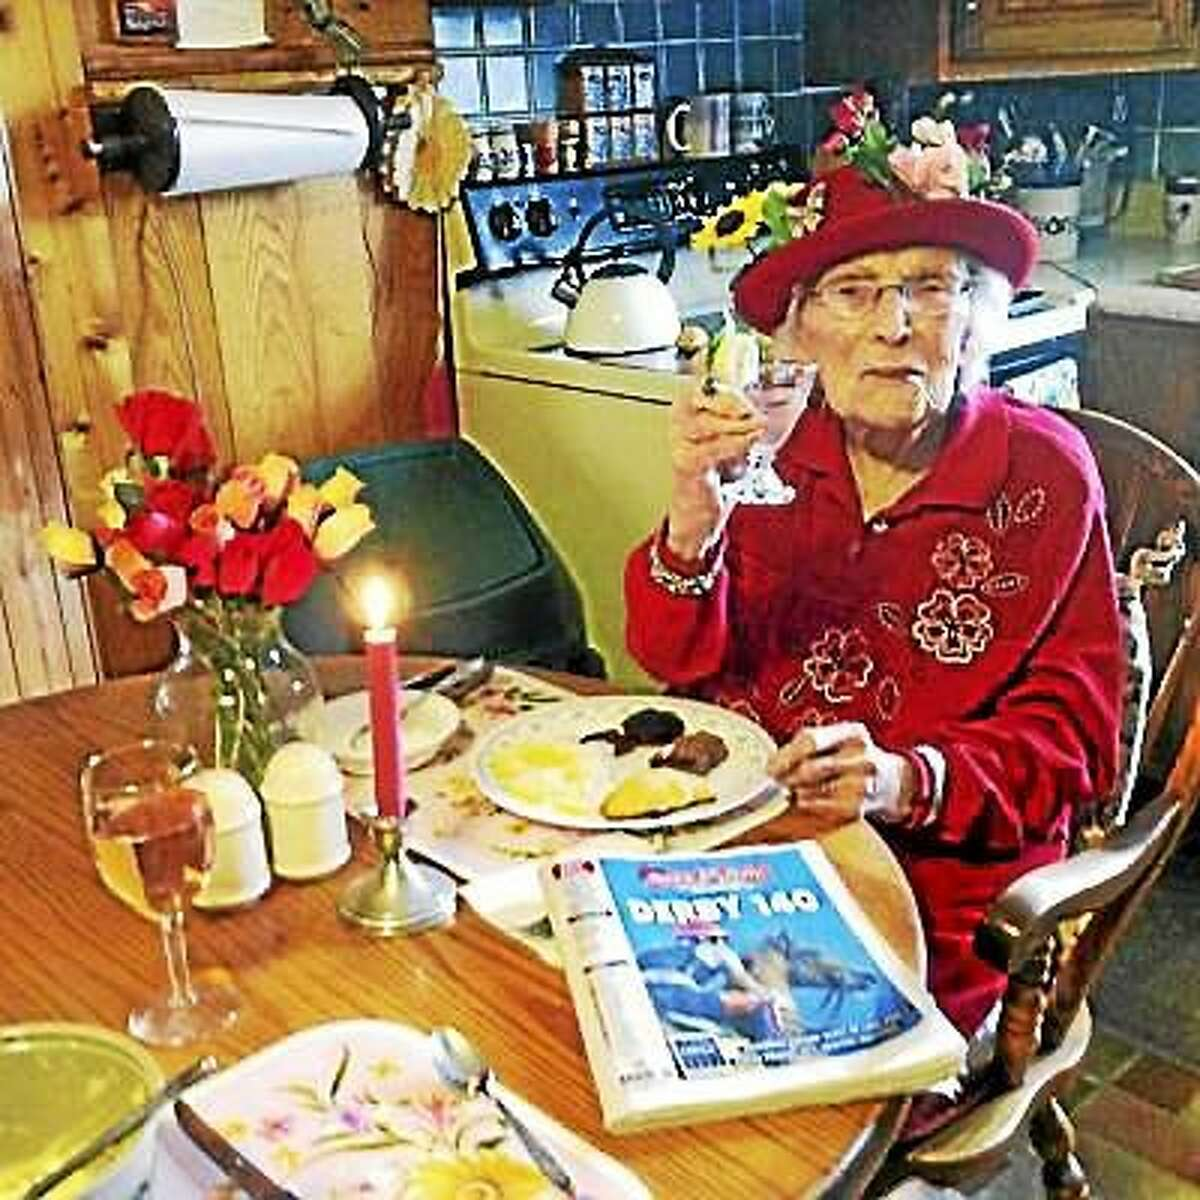 Bernice 'Bennie' Madigan, pictured here on Derby Day this past May in her home in Cheshire, Mass., died early Saturday morning, aged 115 years, 163 days. She was the fifth-oldest person in the world. (Elaine Daniels ó Courtesy Photo)